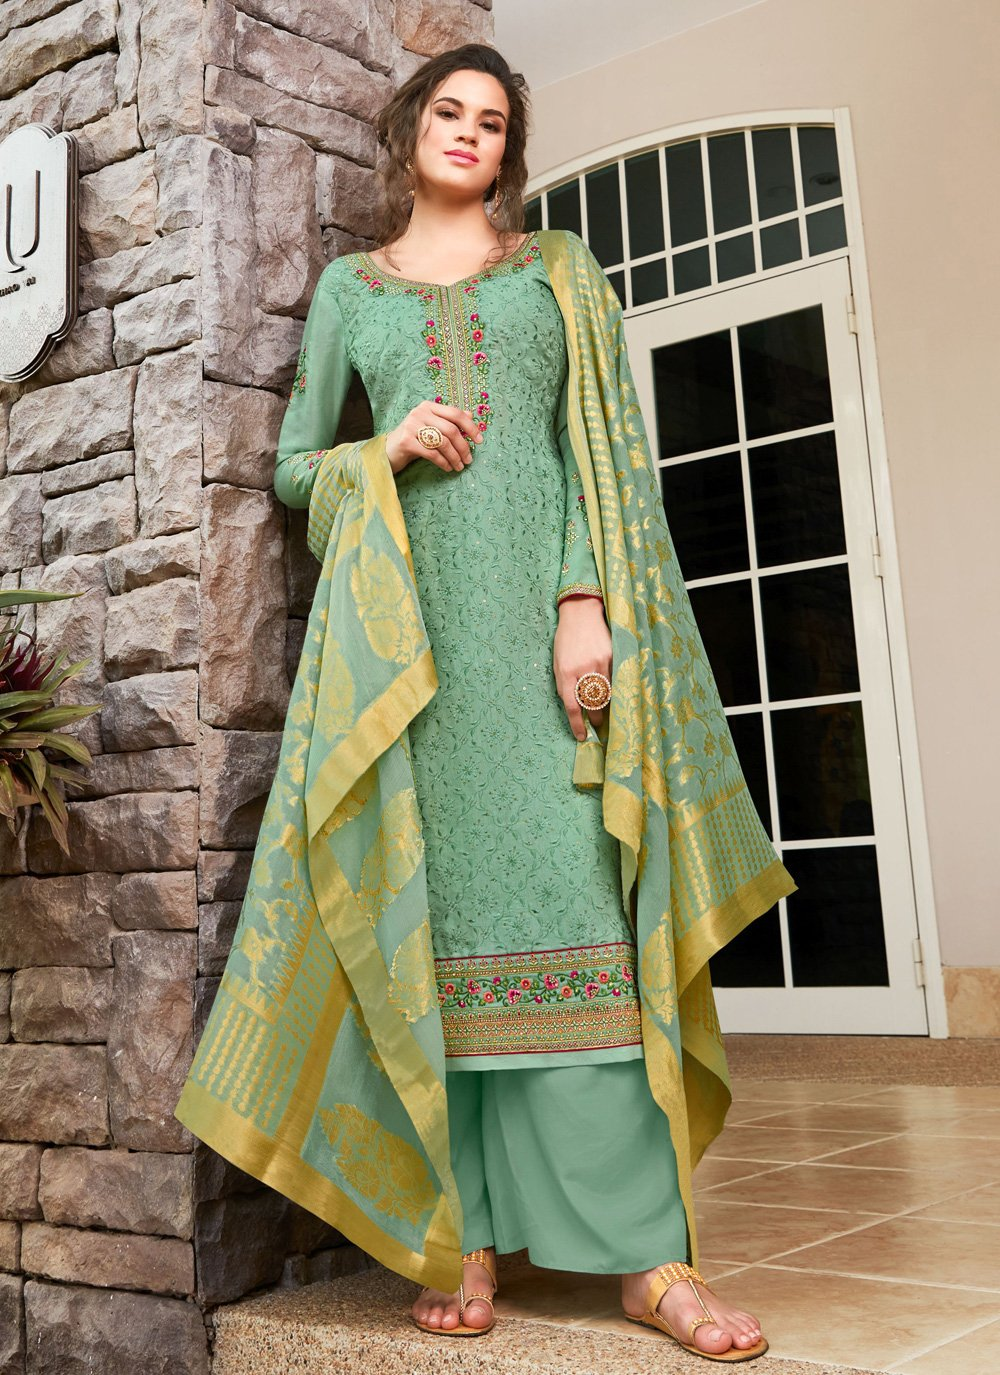 Silk Resham Trendy Salwar Kameez in Sea Green